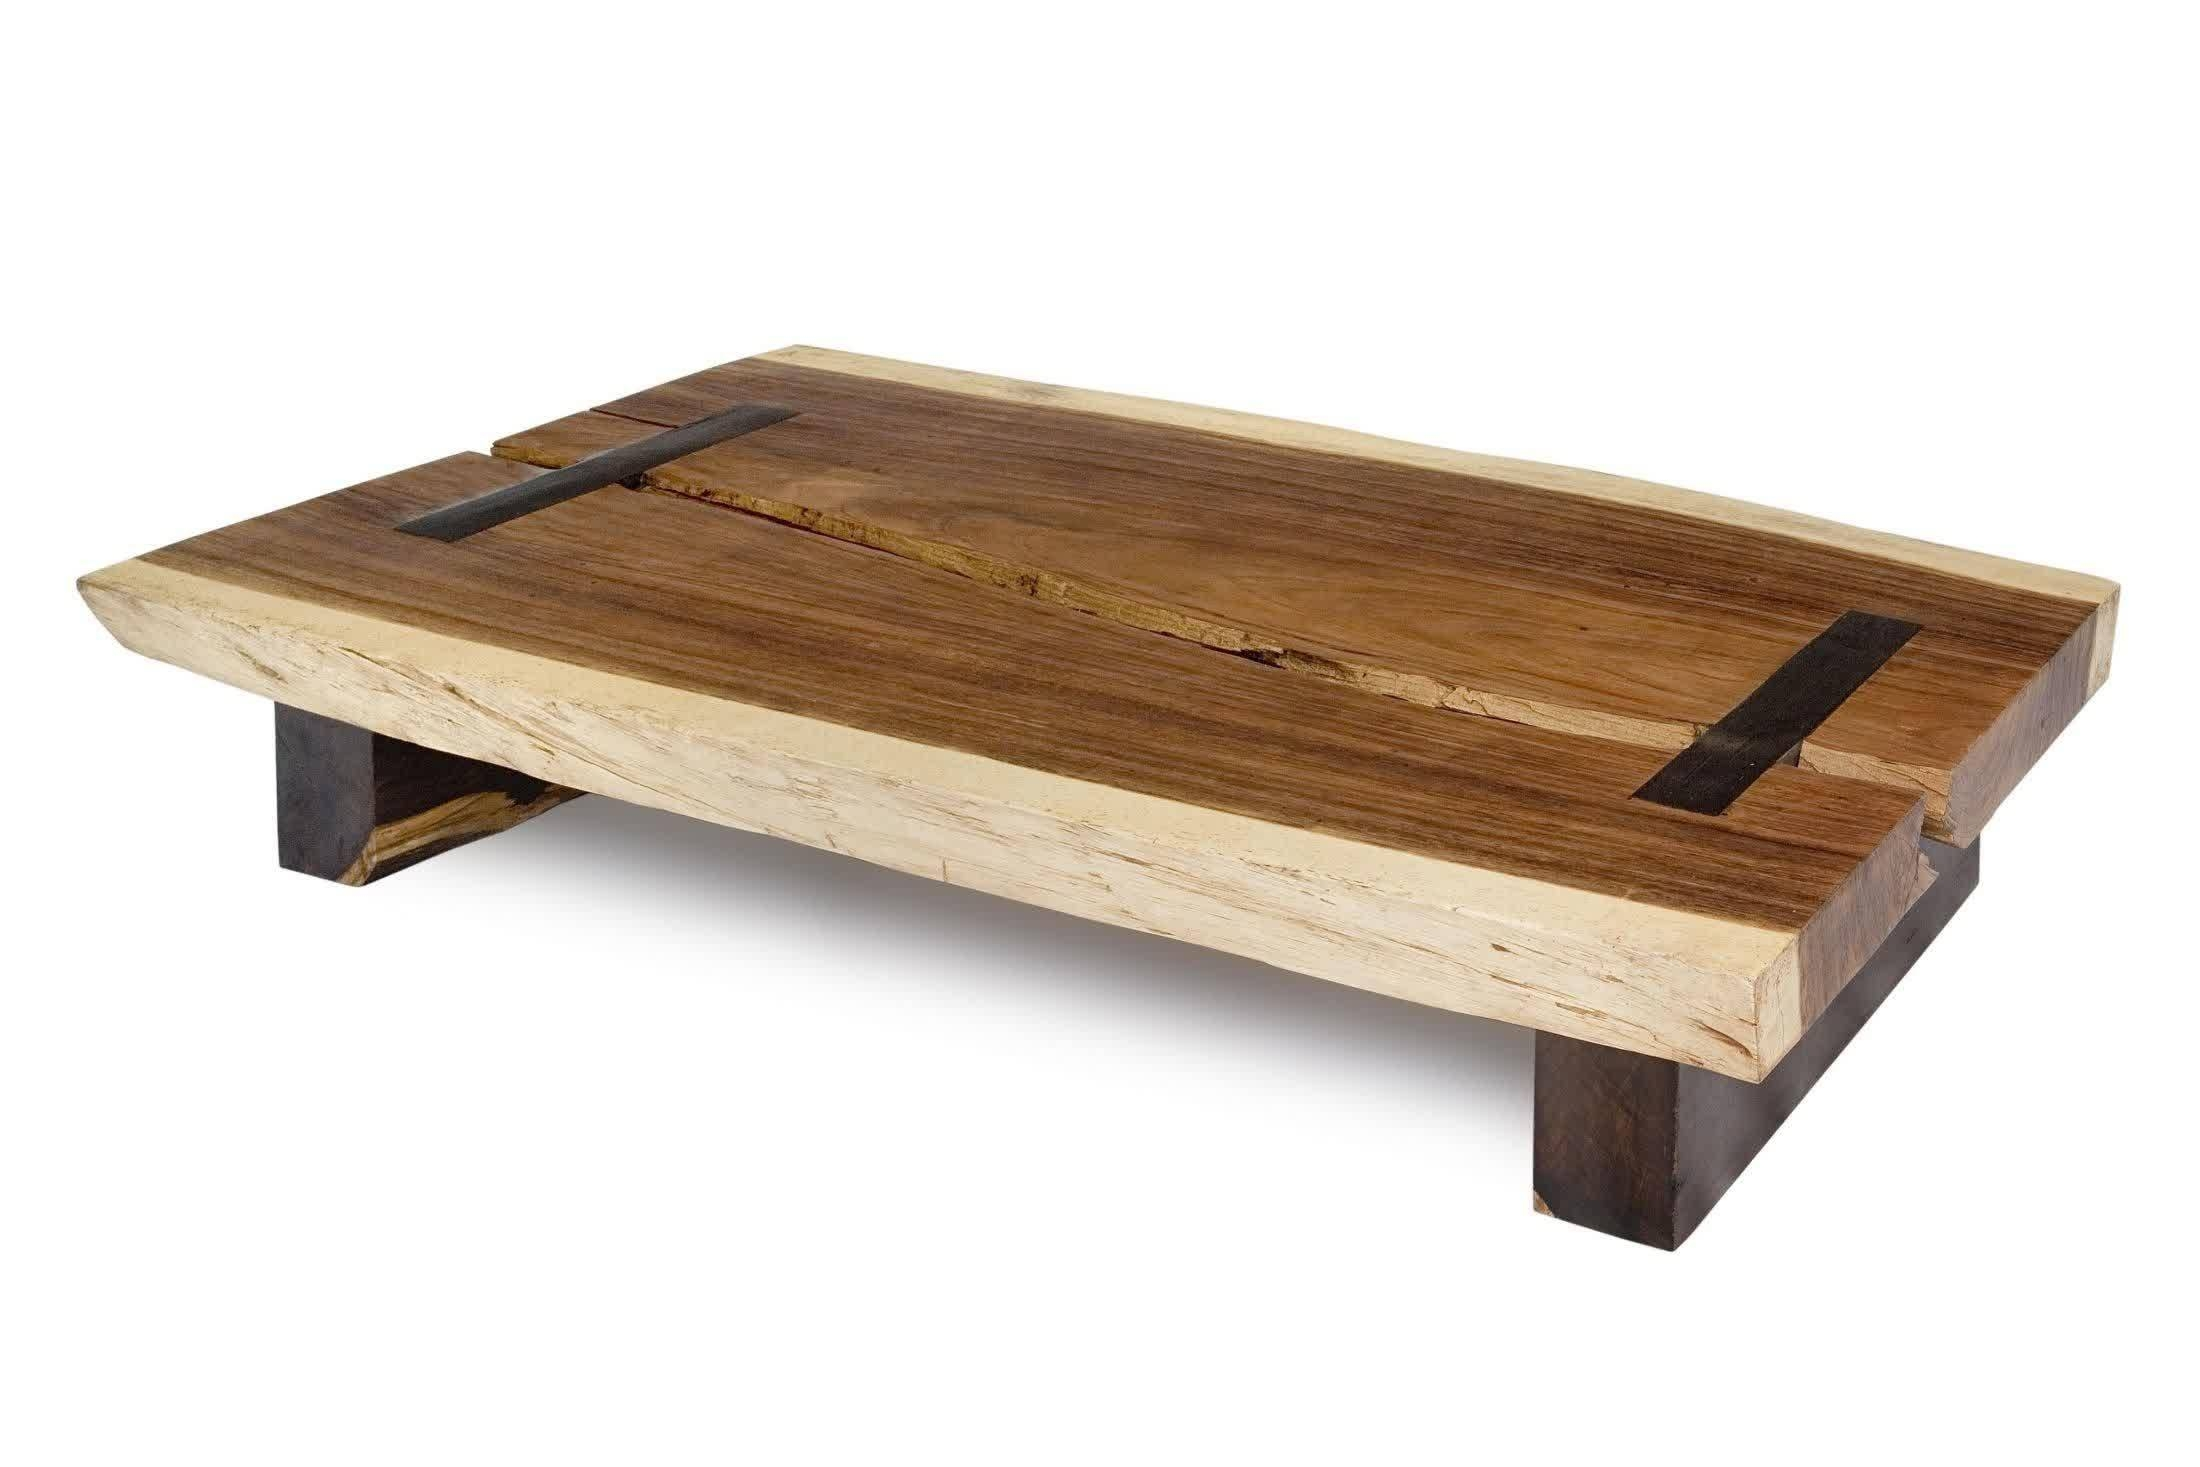 Perfect Low Coffee Table – Low Coffee Table Height, Low Level Throughout Large Low Wooden Coffee Tables (View 2 of 30)